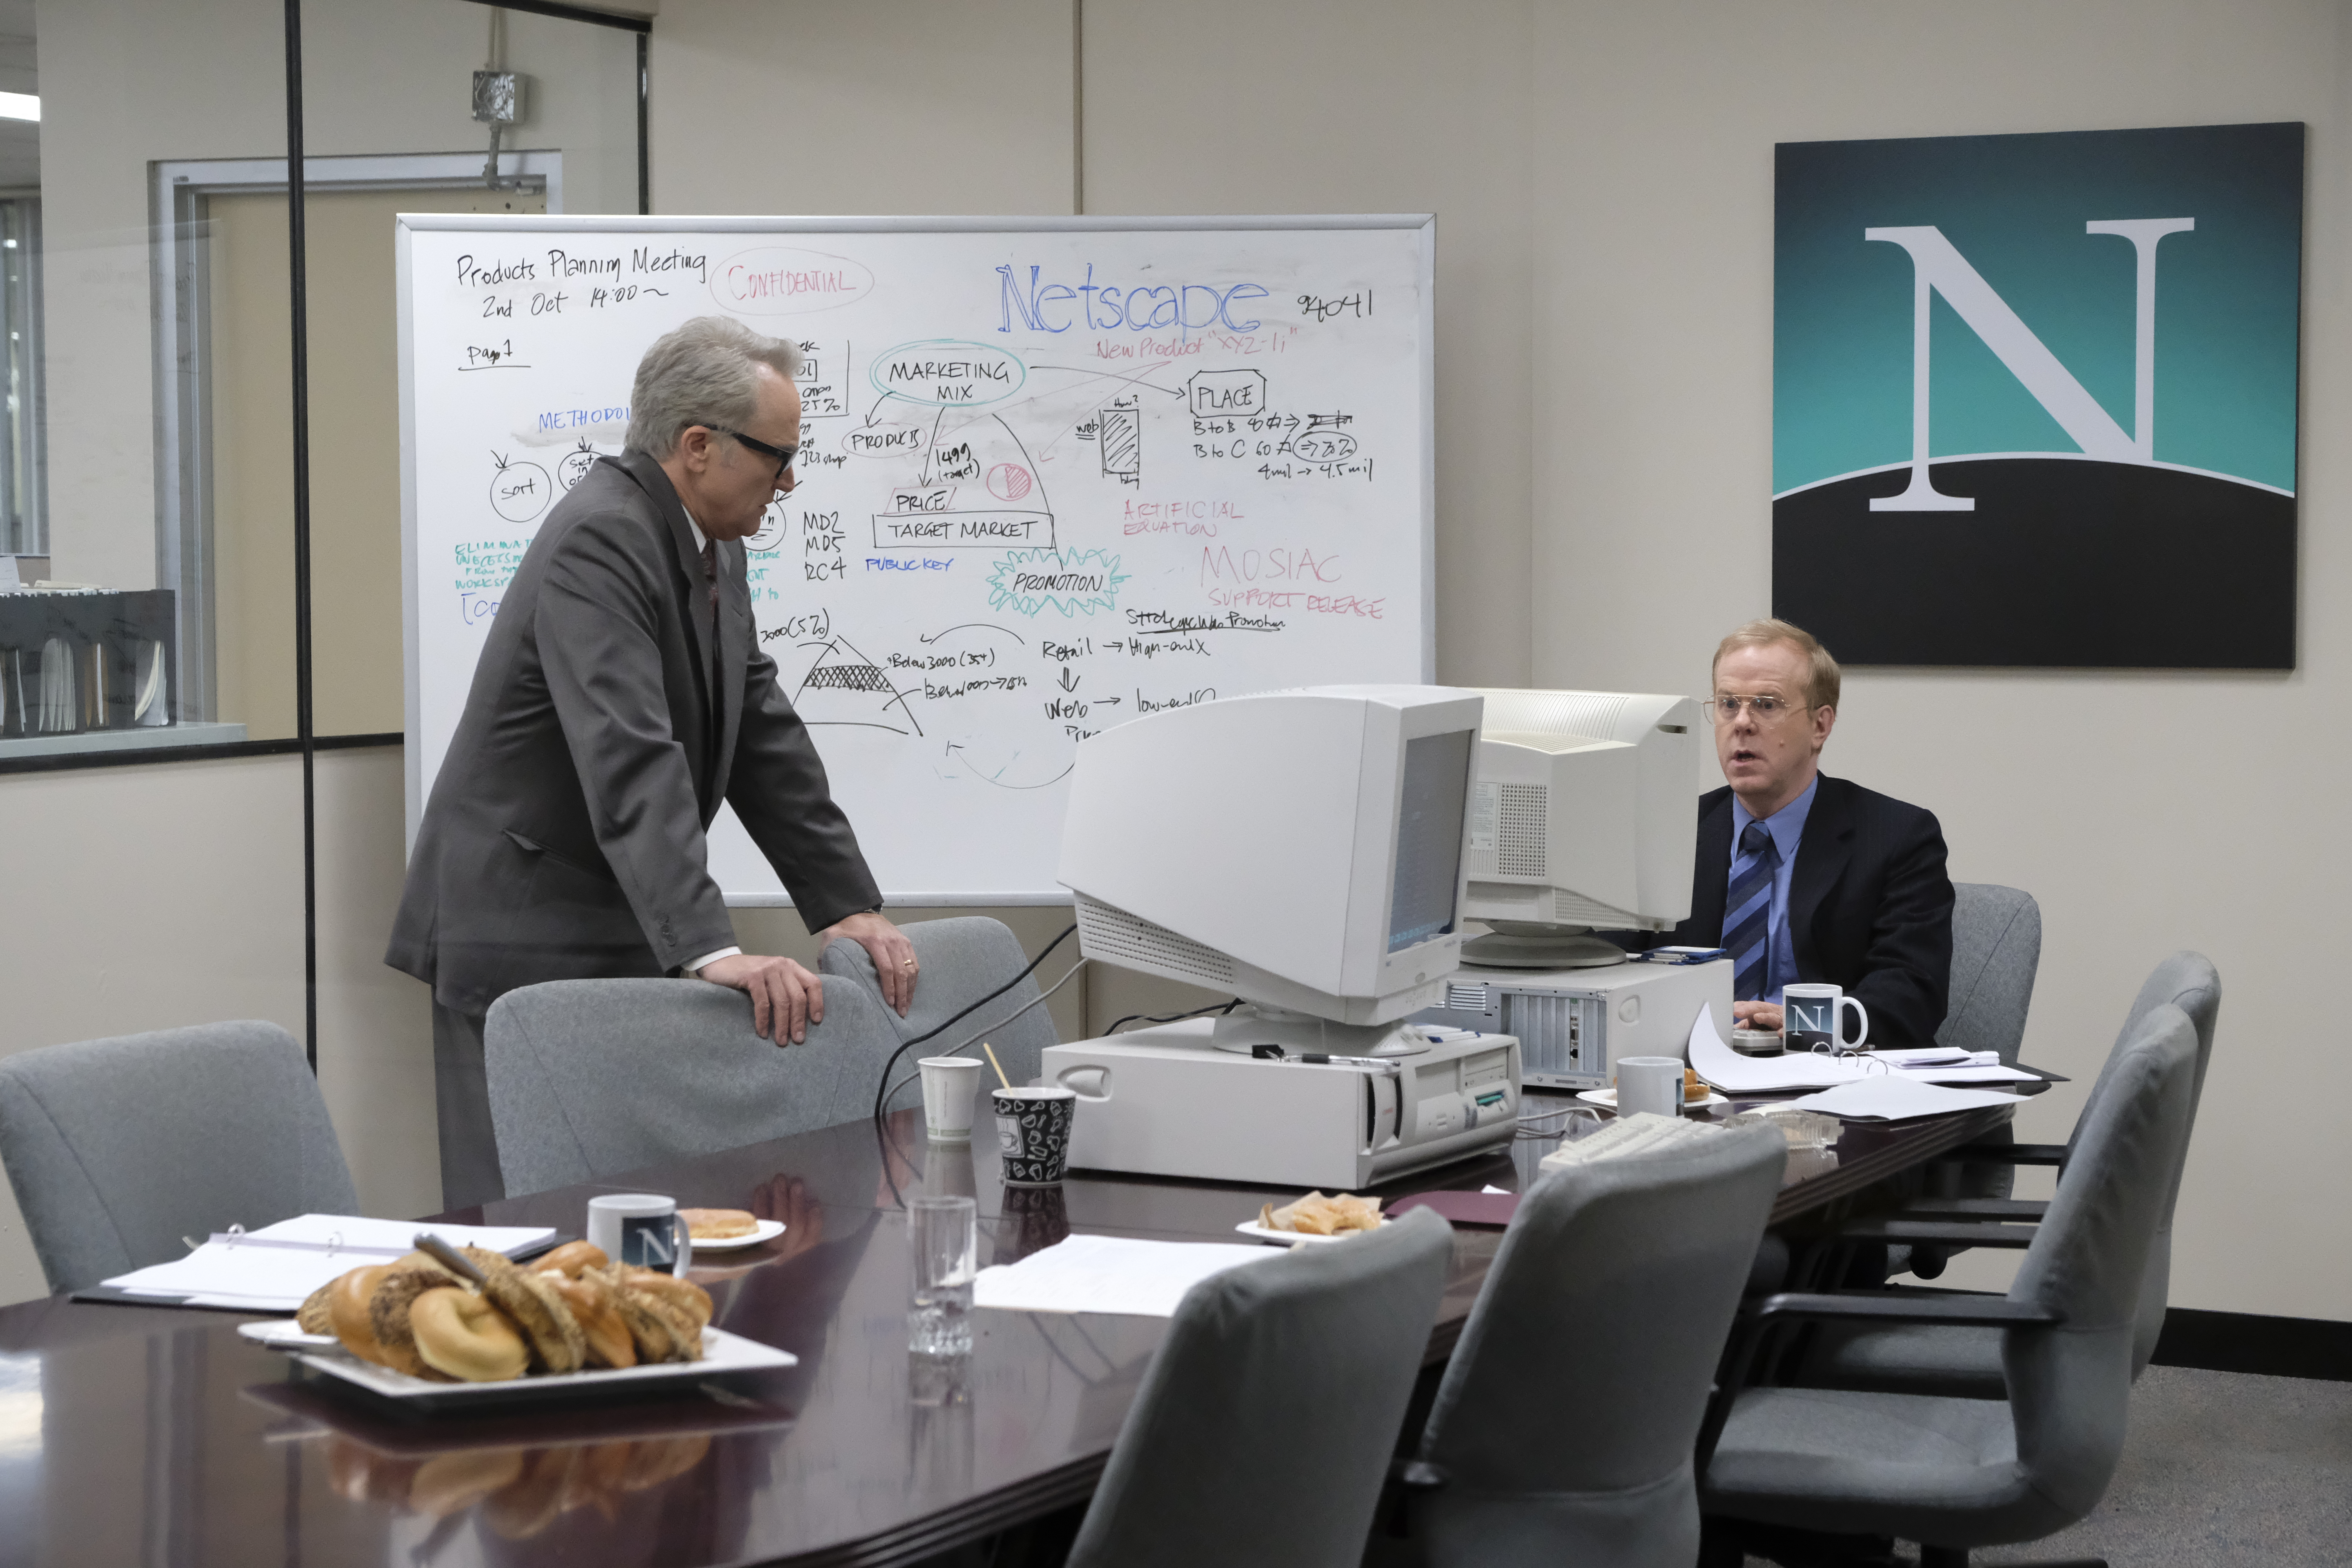 (Left to right) Bradley Whitford and John Murphy as Netscape pioneers James Barksdale and Jim Clark in National Geographic's VALLEY OF THE BOOM. (National Geographic/Bettina Strauss)